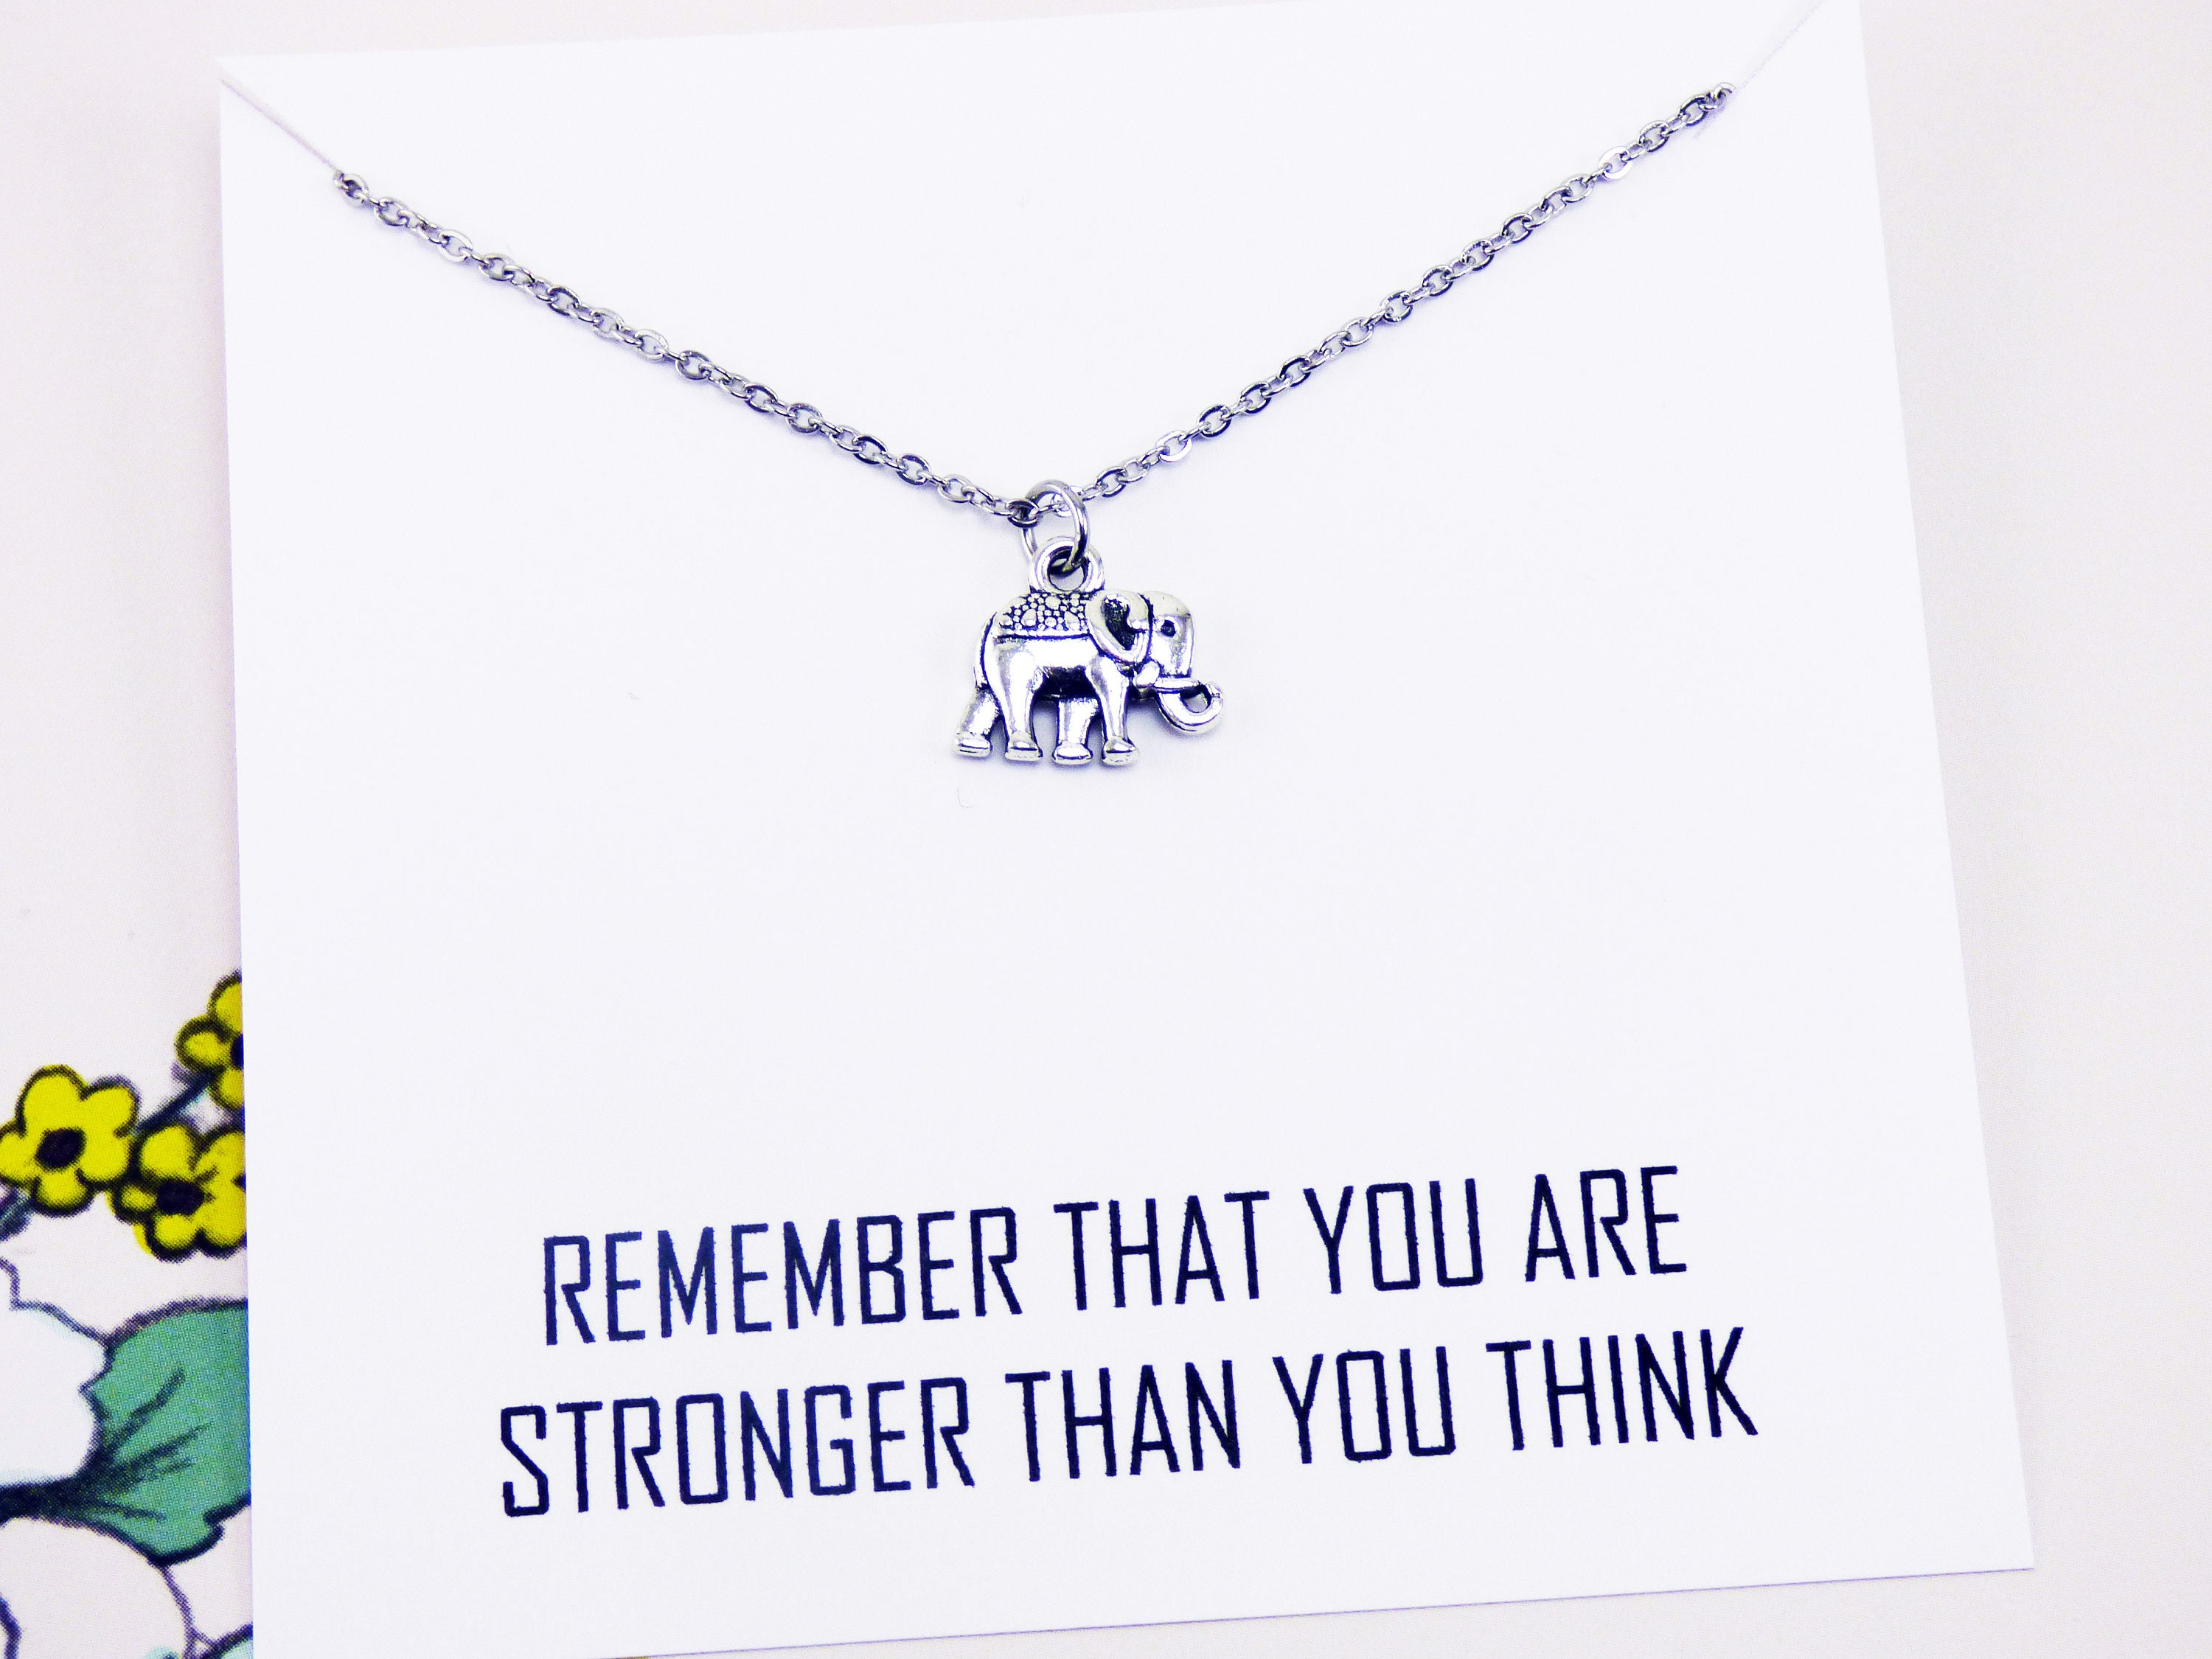 can inspirational bird reminder with jewelry swan pin necklace a is we silver that this meaningful